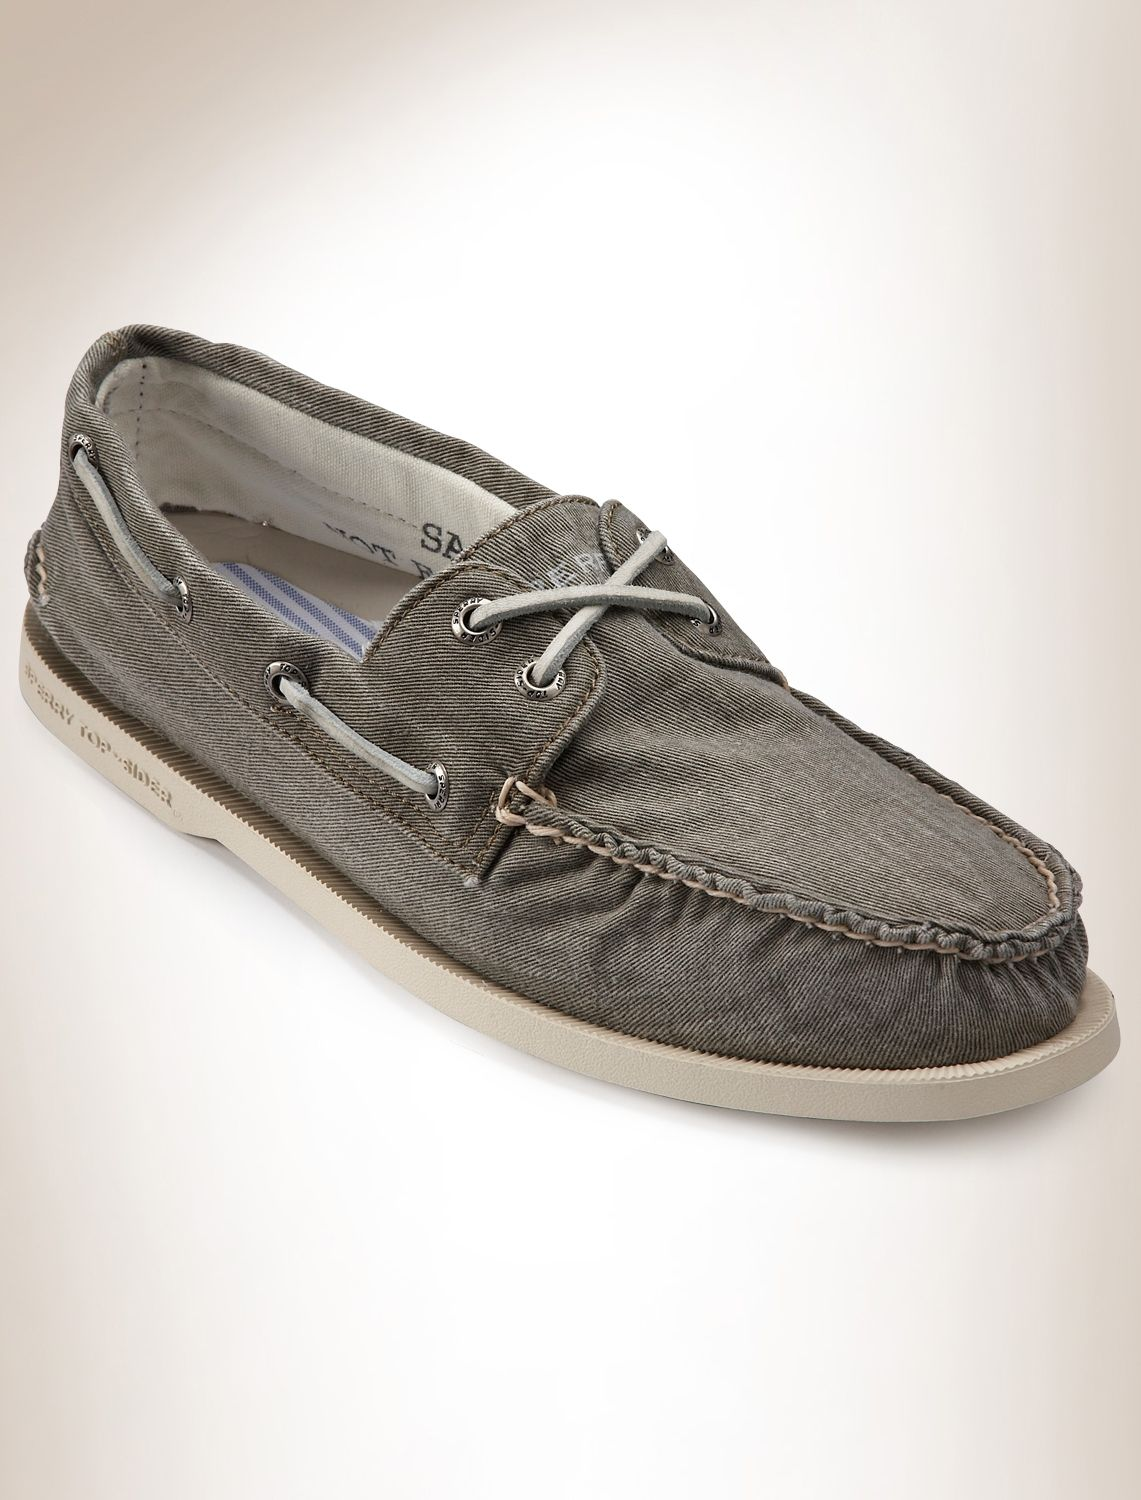 Top-Sider Authentic Original Boat Shoes